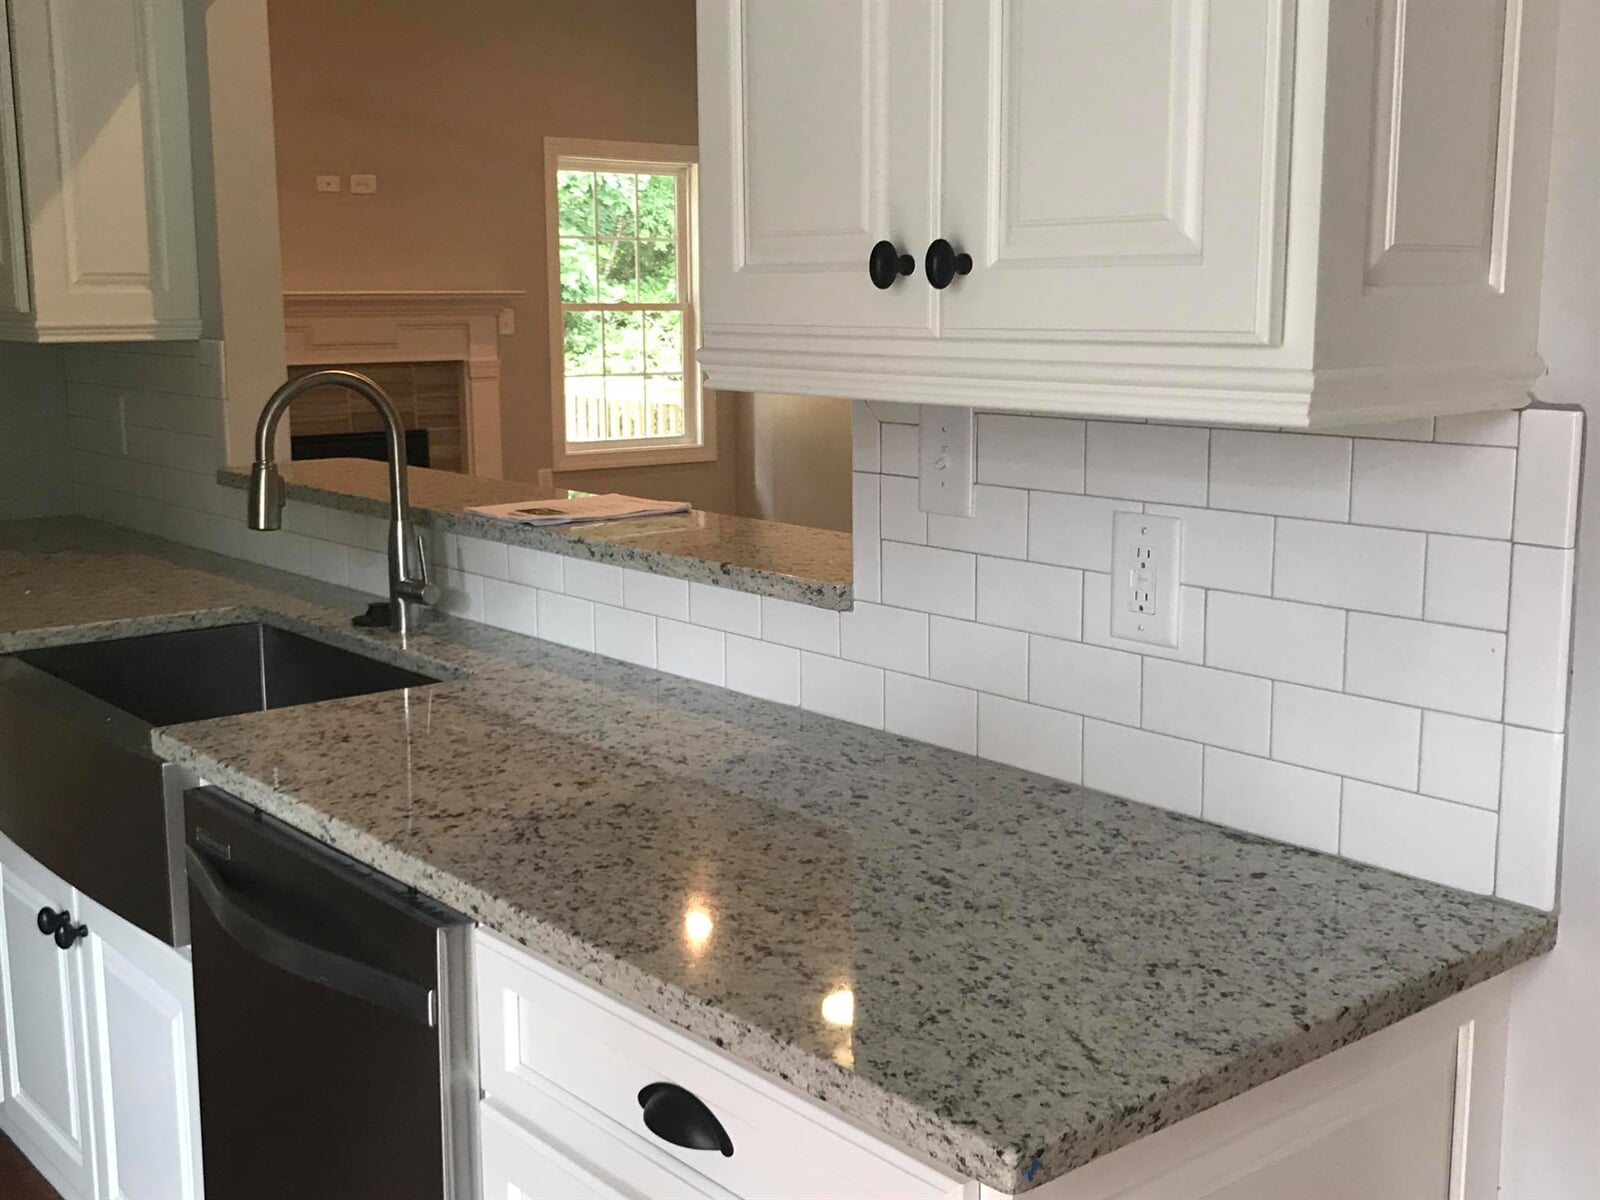 Custom tile backsplash in Lawrenceville, GA from Carpets Unlimited